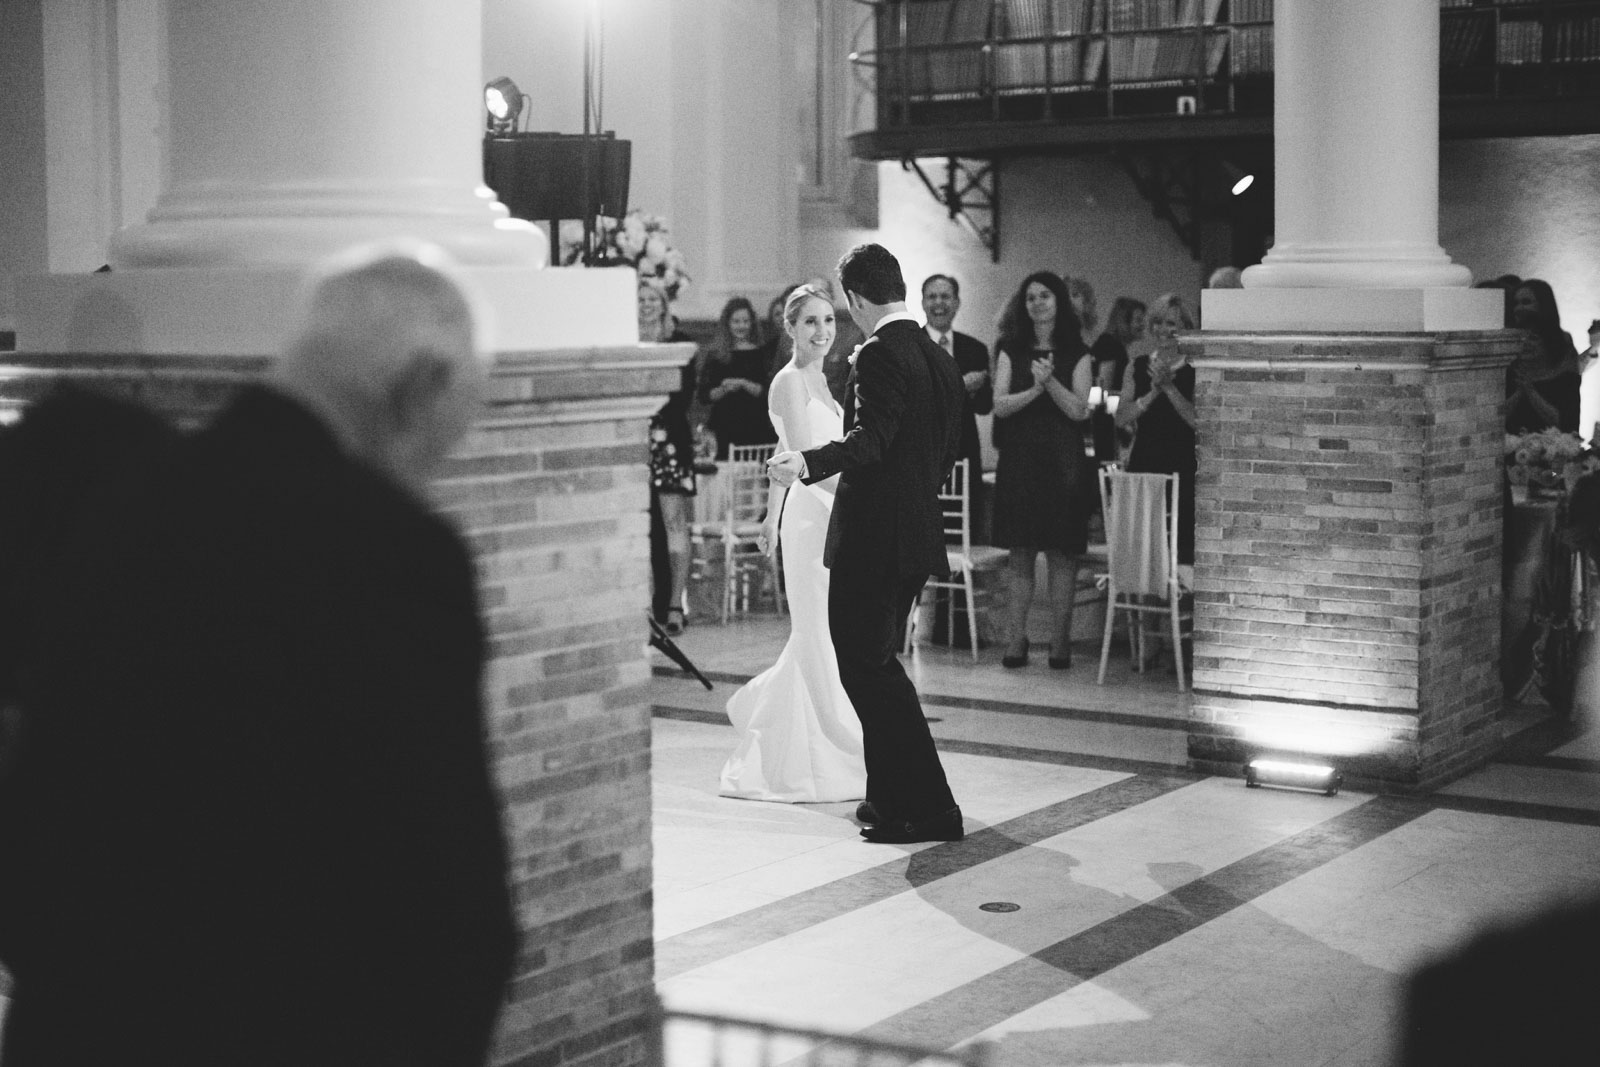 bride and groom sharing first dance at Boston Public Library wedding reception in Guastavino room